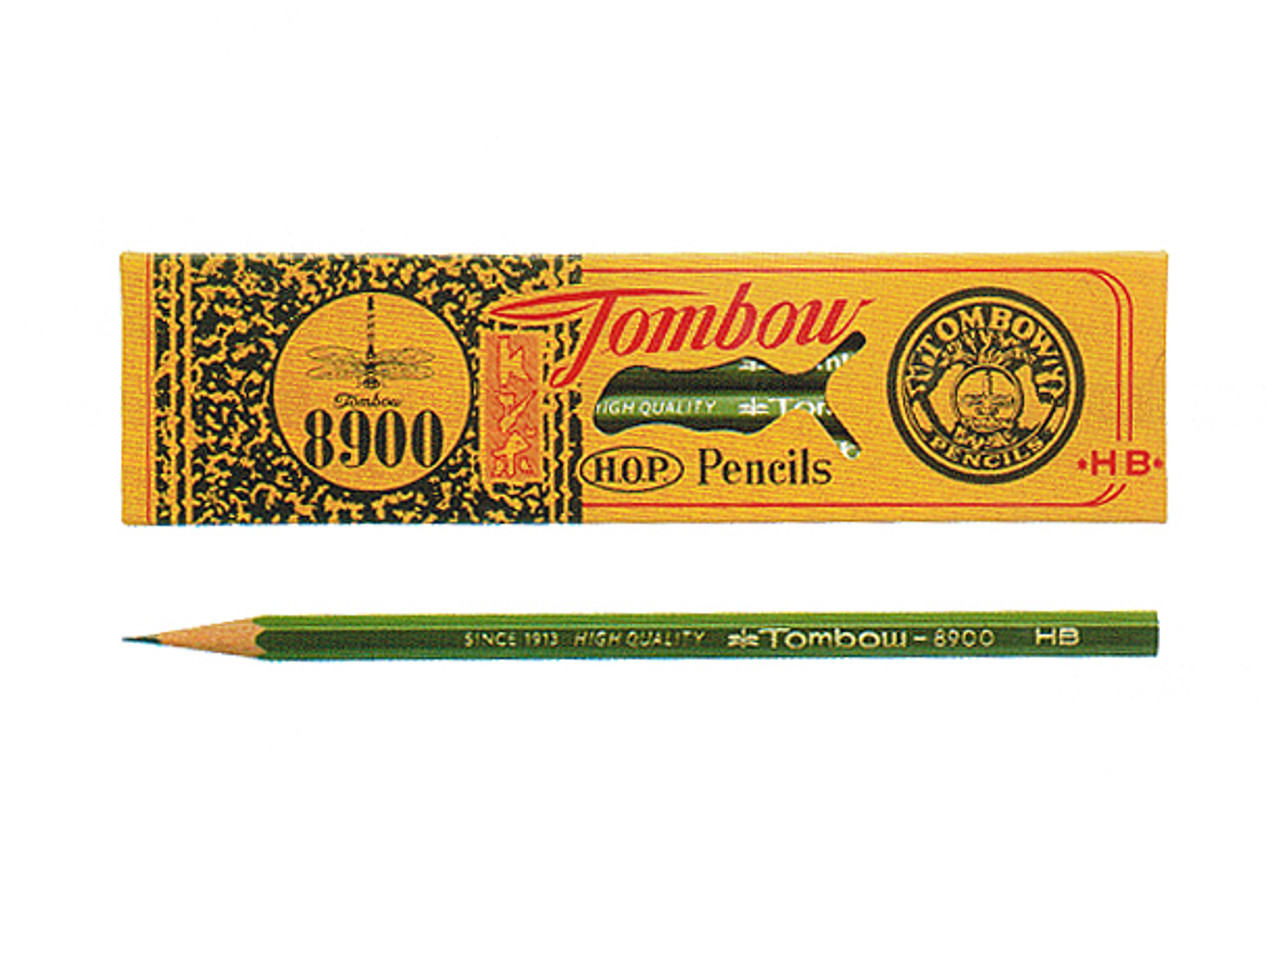 Tombow 8900 graphite pencils